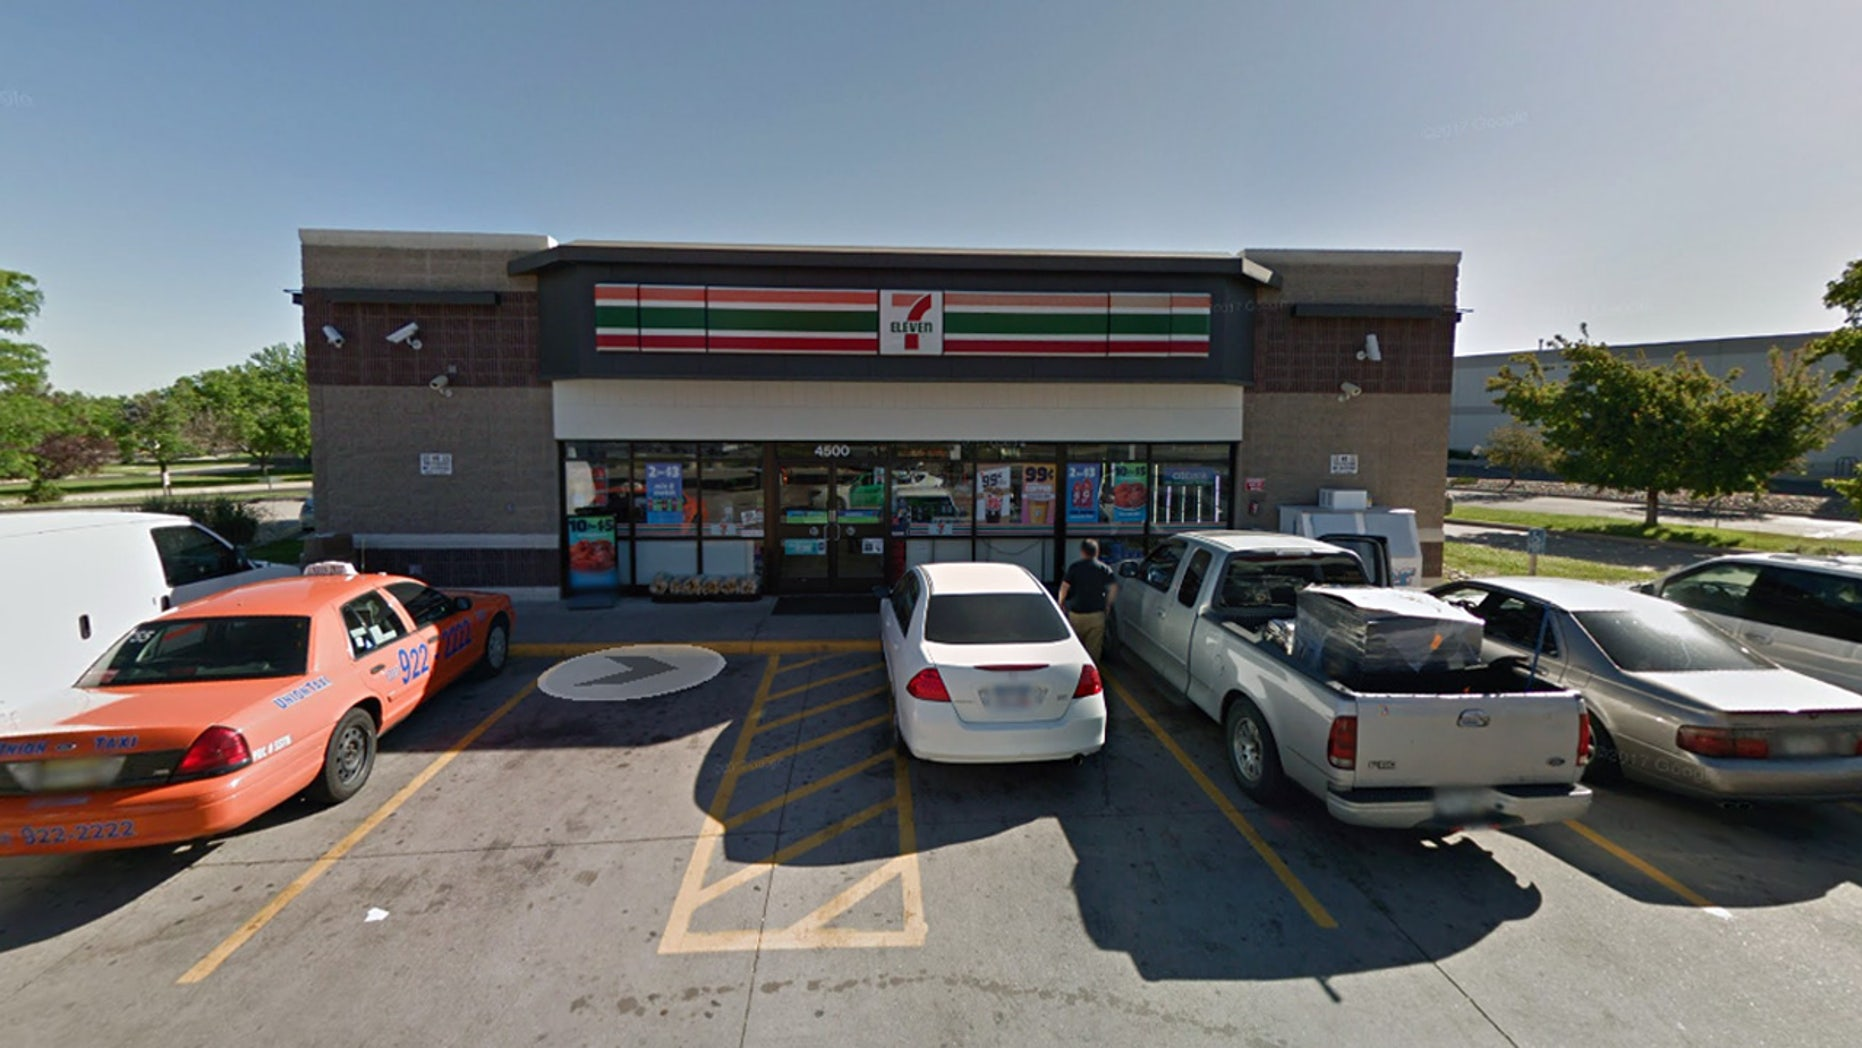 The corrections workers were discovered kissing each other in the parking lot of this 7-Eleven in Denver.